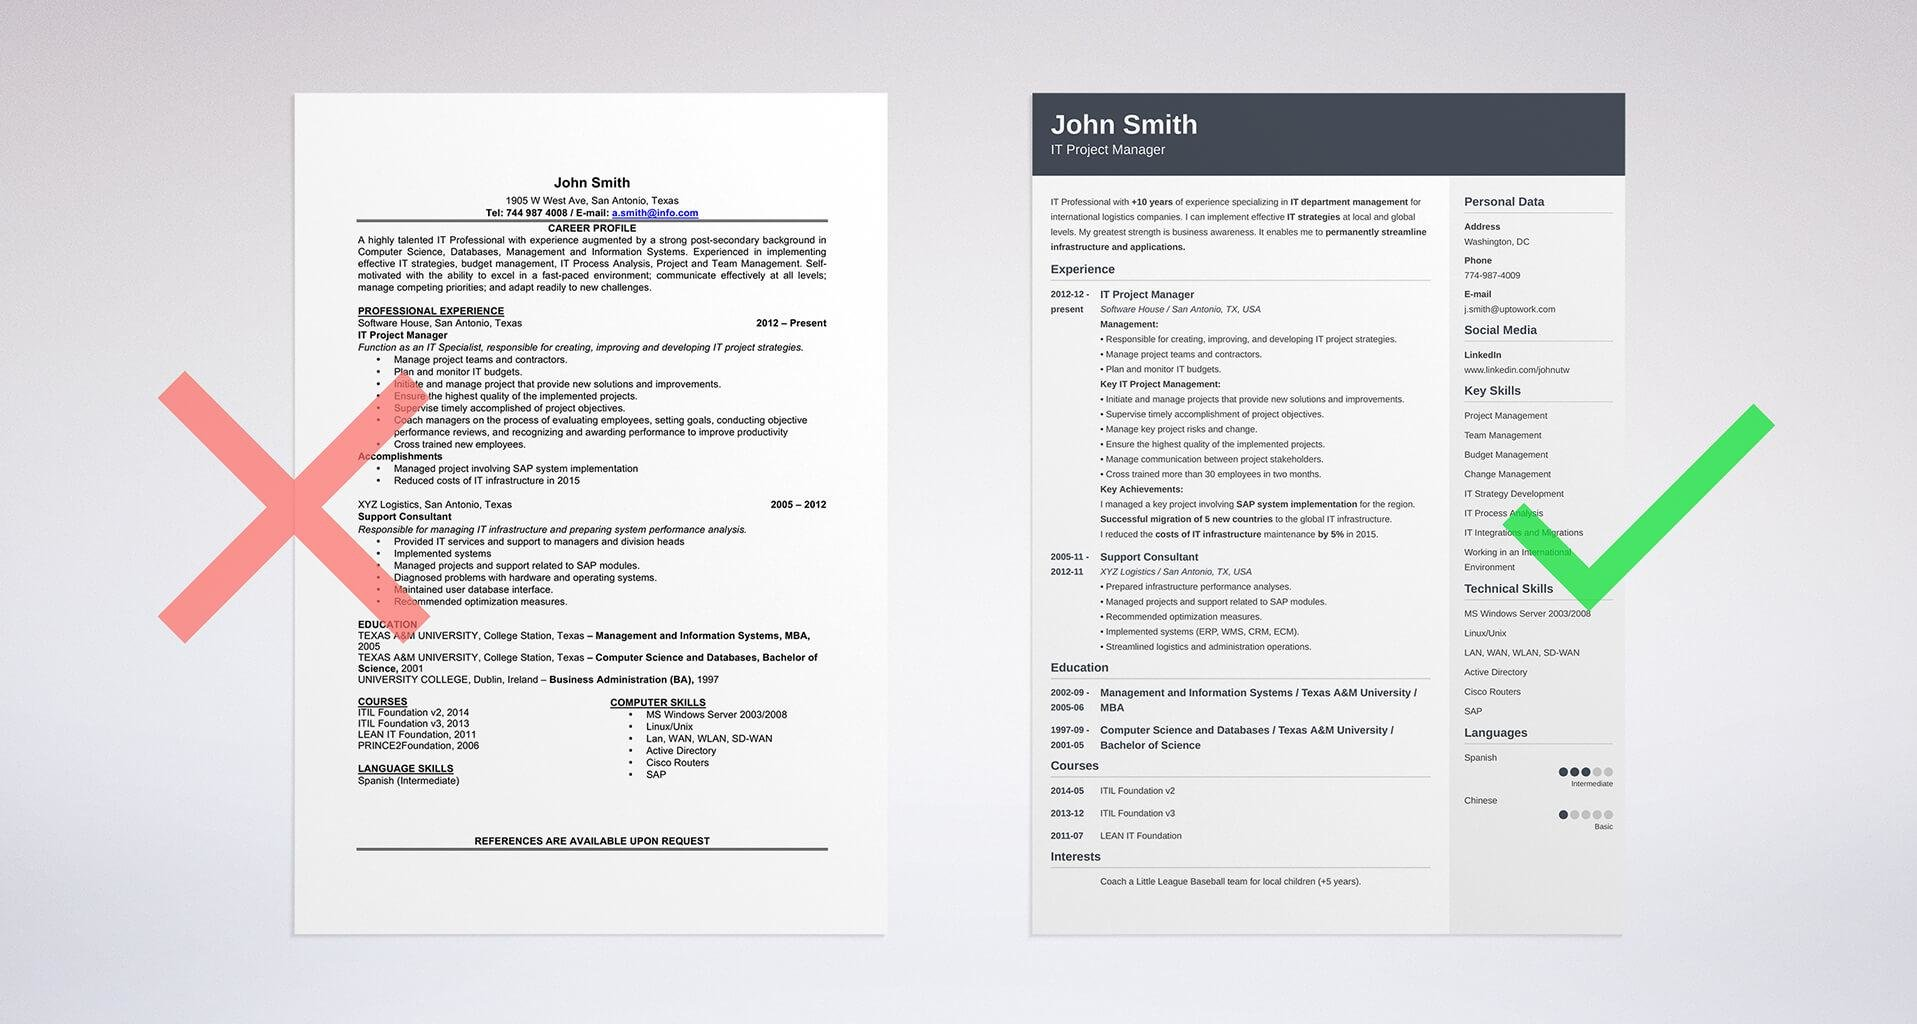 best resume format professional samples most used example of formats forensic science for Resume Most Used Resume Format